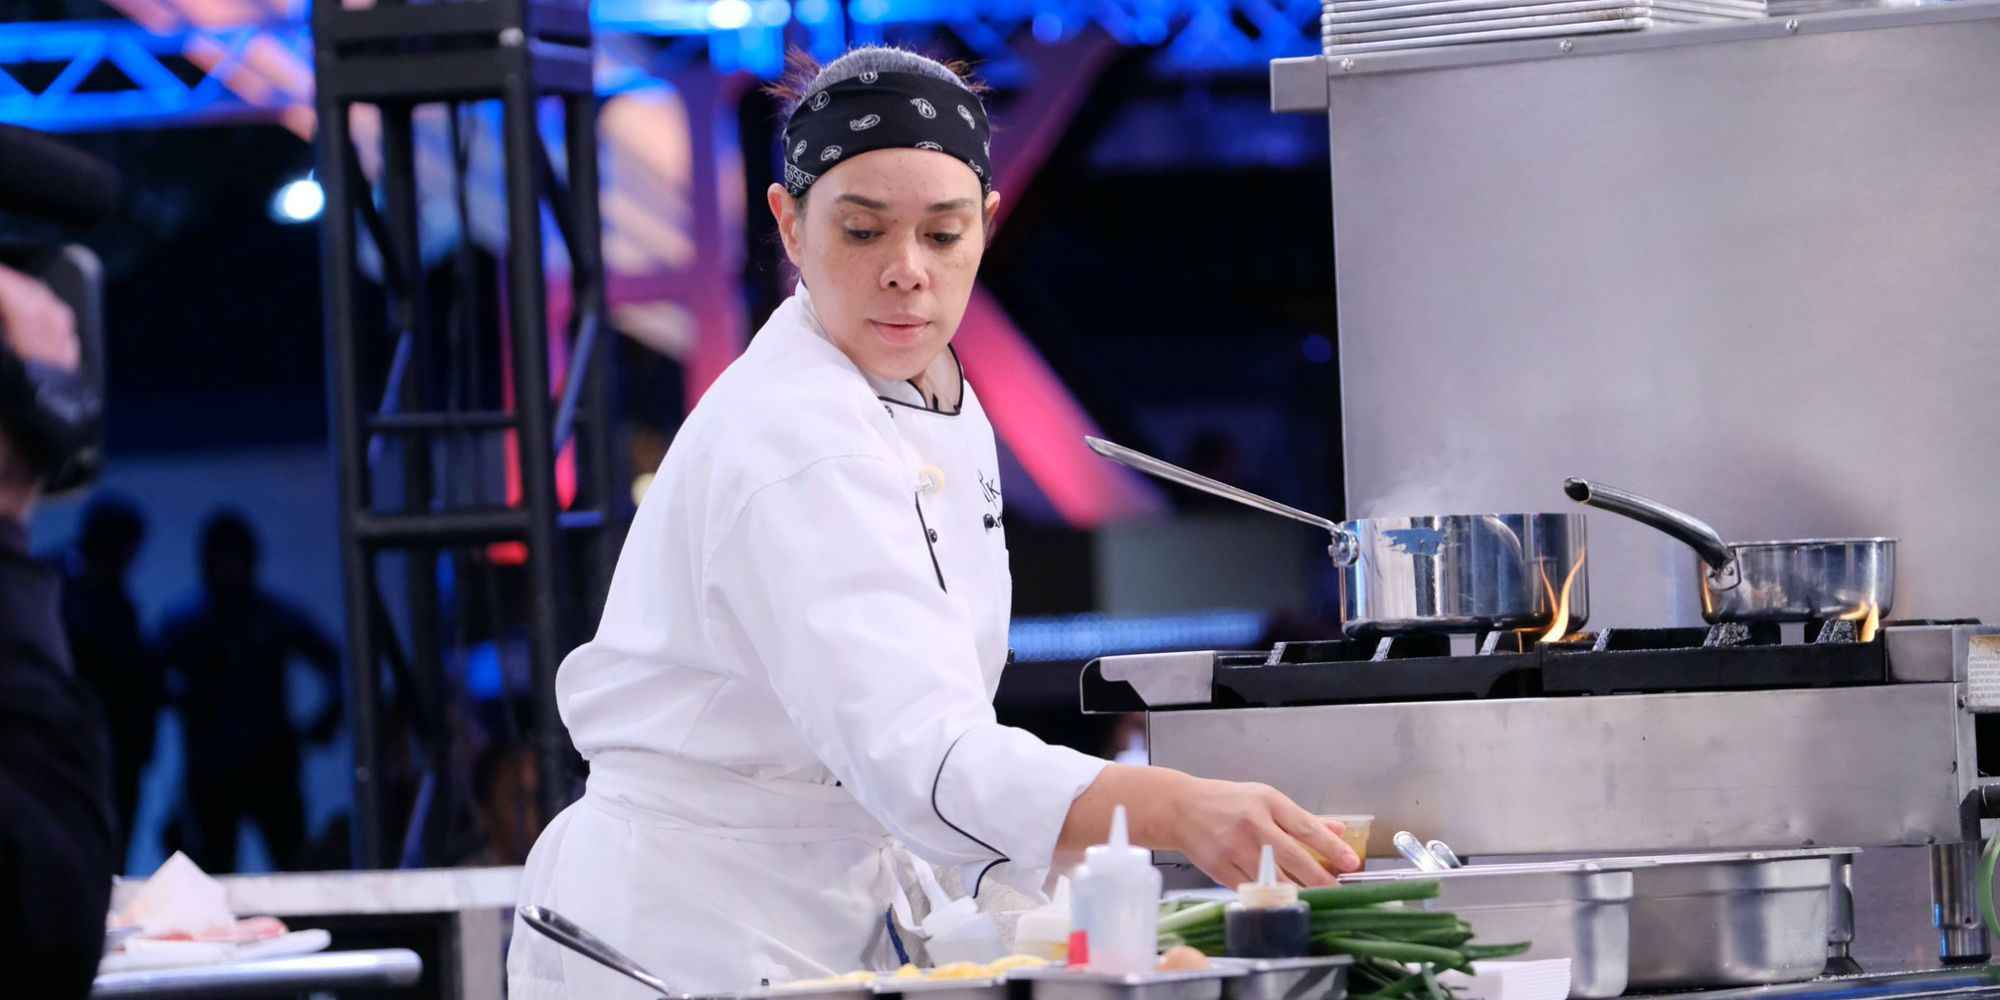 Hell S Kitchen Season 18 What Happened To The Chefs After The Show